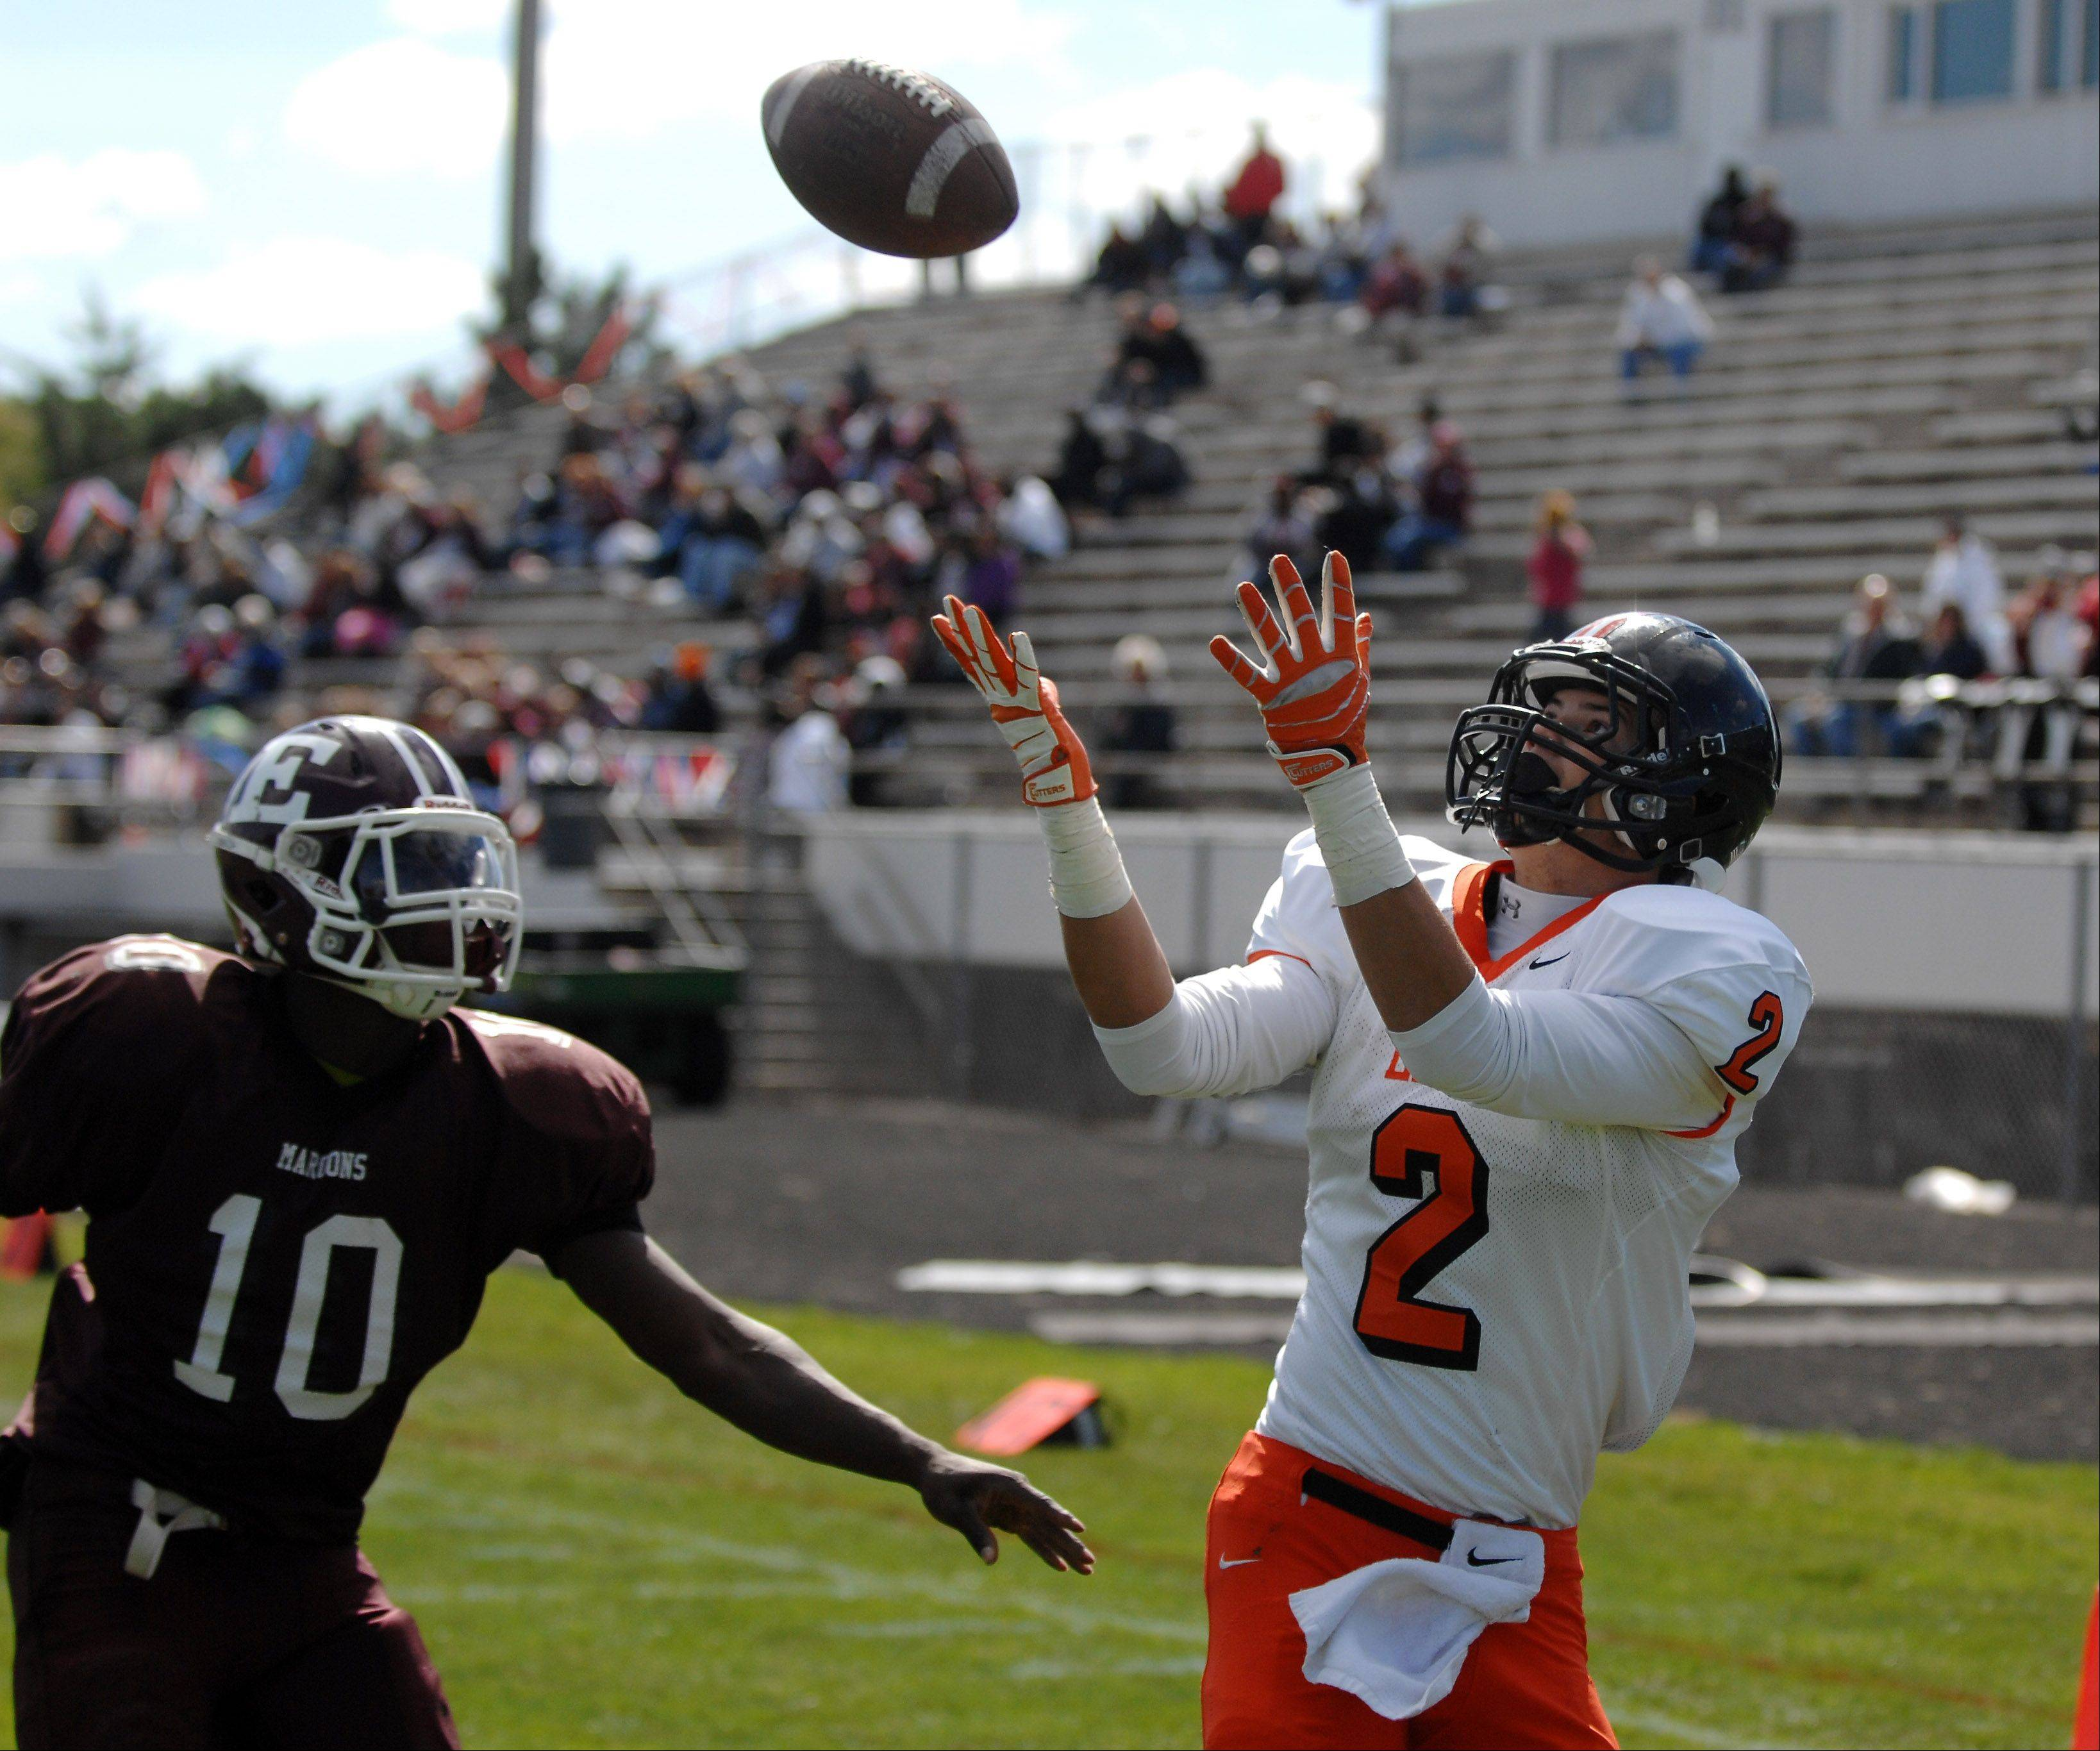 St. Charles East's Brannon Barry watches the ball into his hands for a first-quarter touchdown reception against Elgin during Saturday's game at Memorial Field in Elgin.